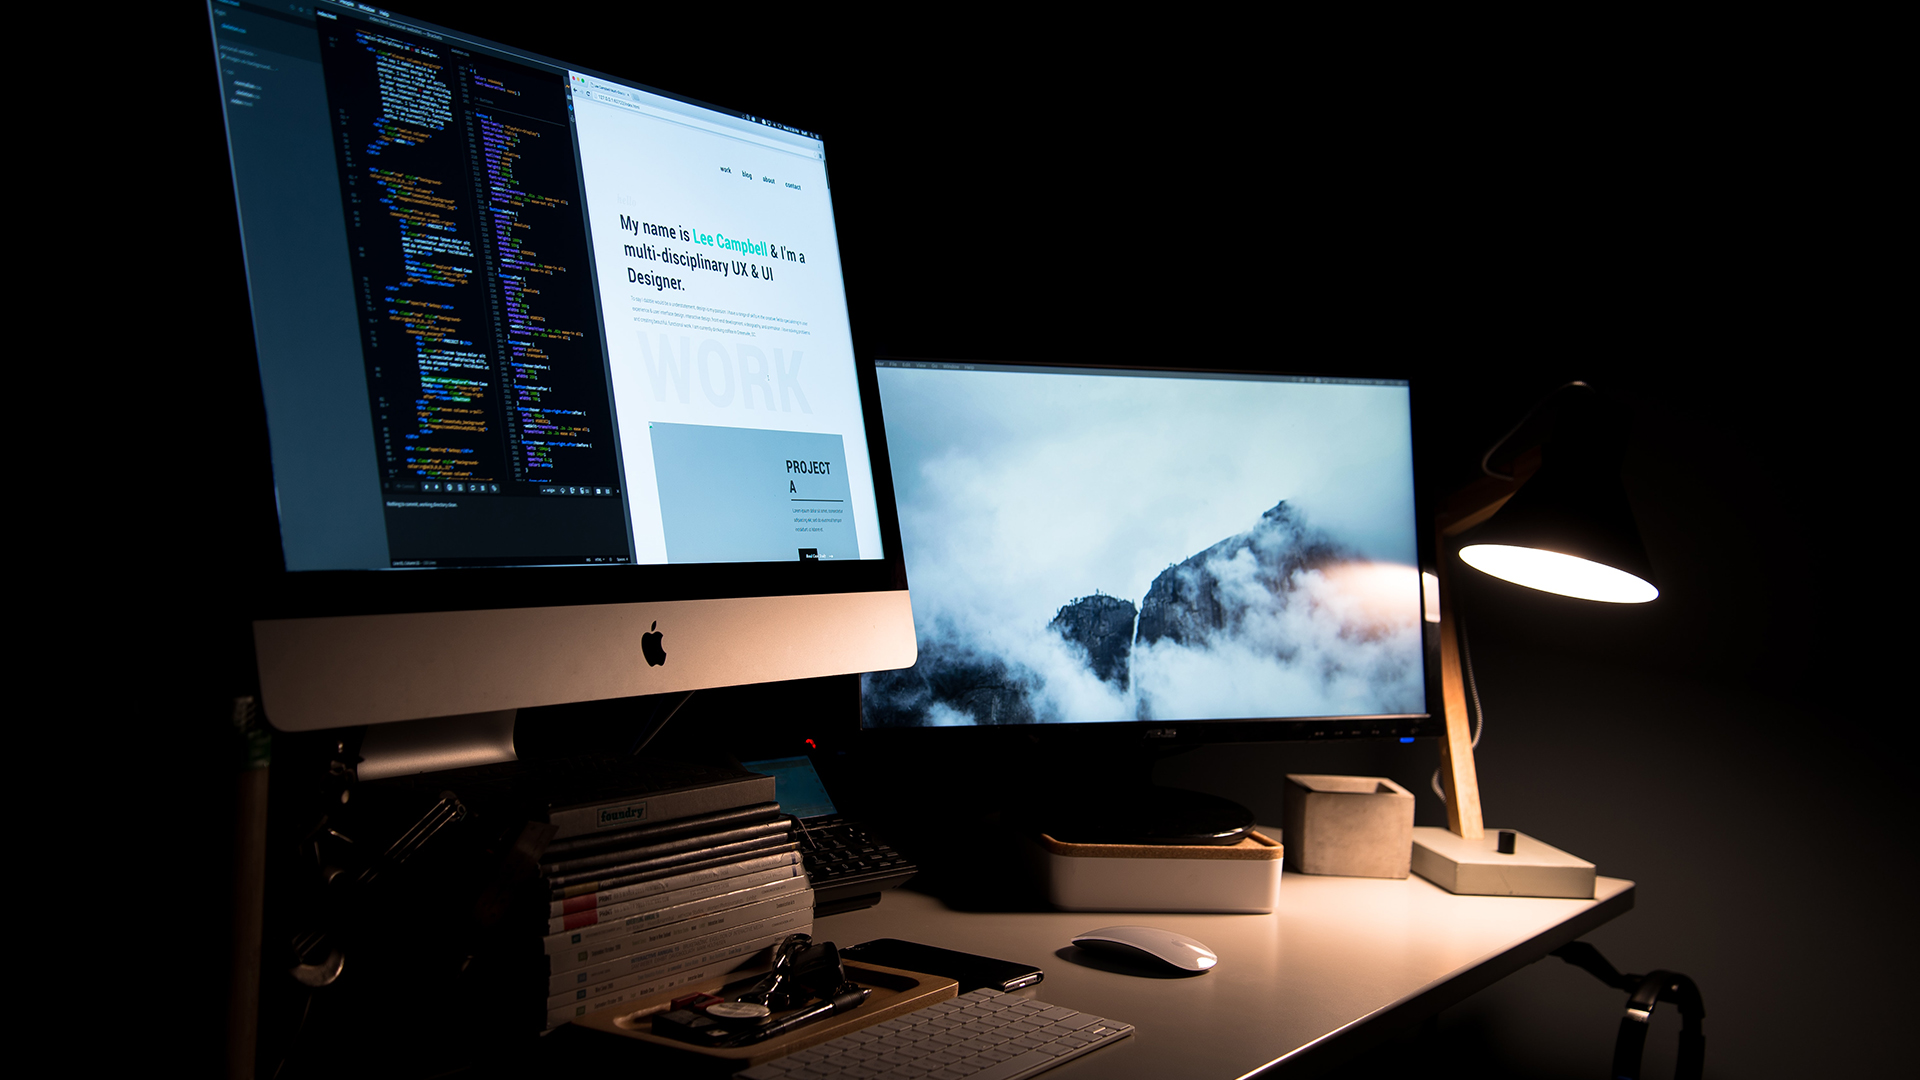 two screens on a desk showing different webpages